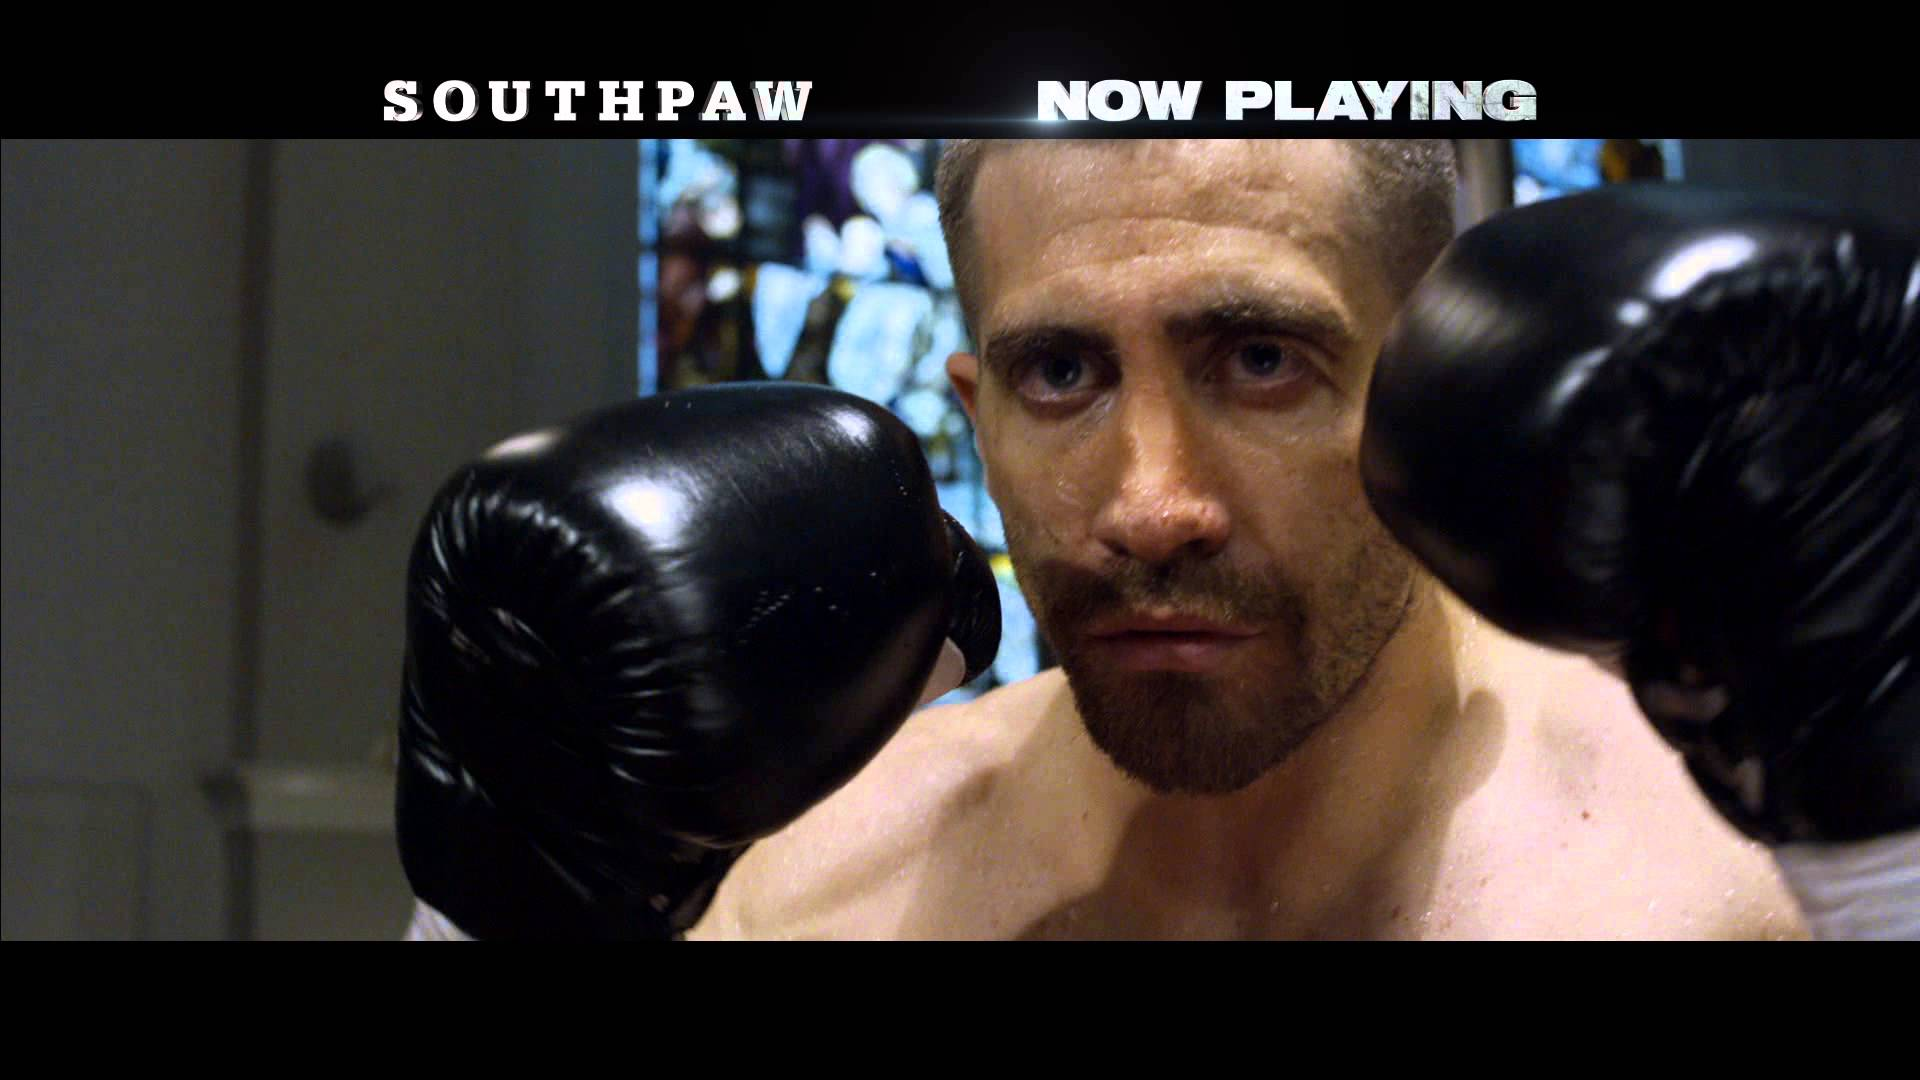 SOUTHPAW – One Of The Great Films Of 2015 – The Weinstein Company